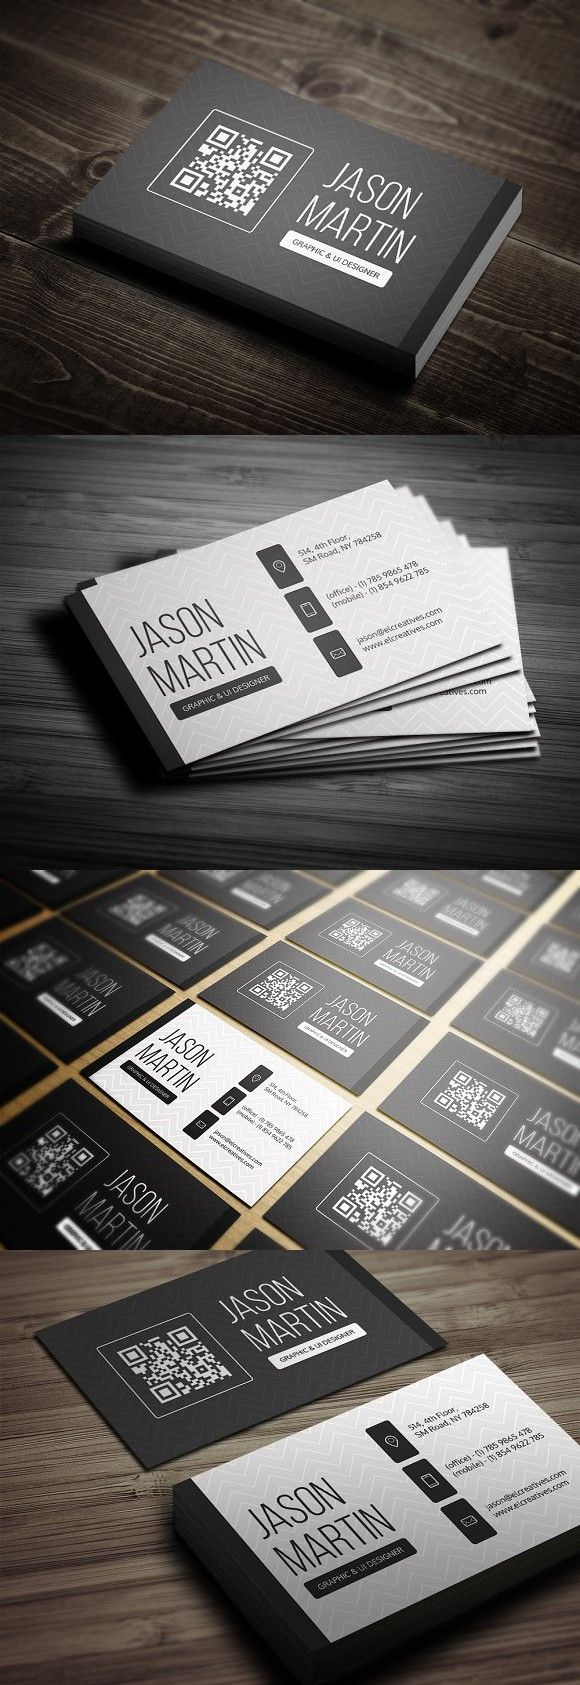 65 Best Car Industry Business Card Templates Images On Pinterest